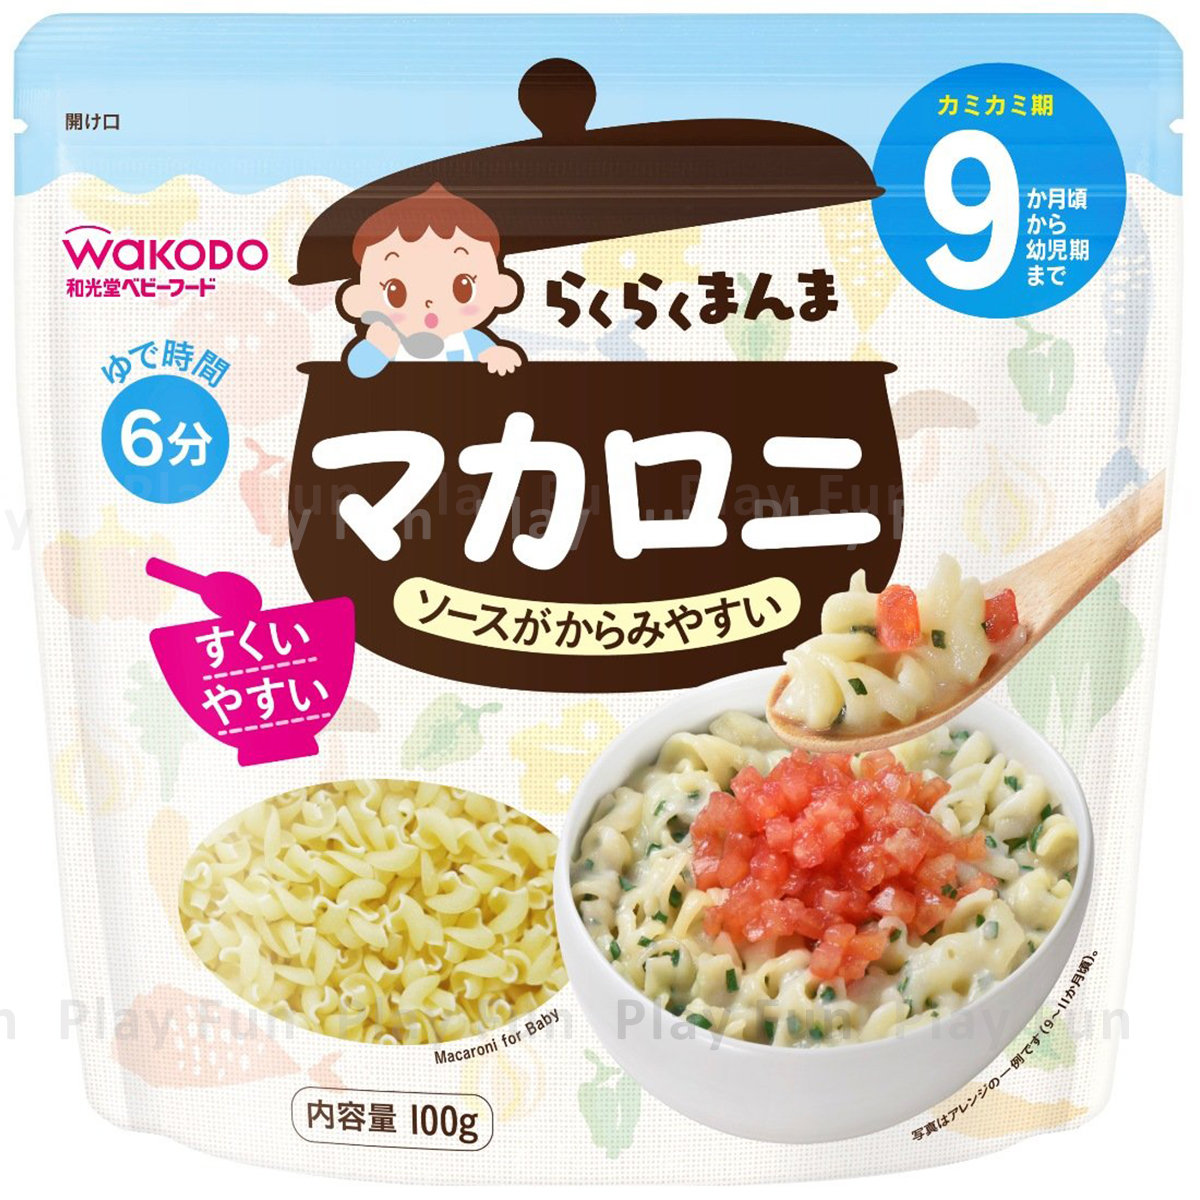 Japanese Macaroni 100g [For 9months old baby]  (4987244185259)